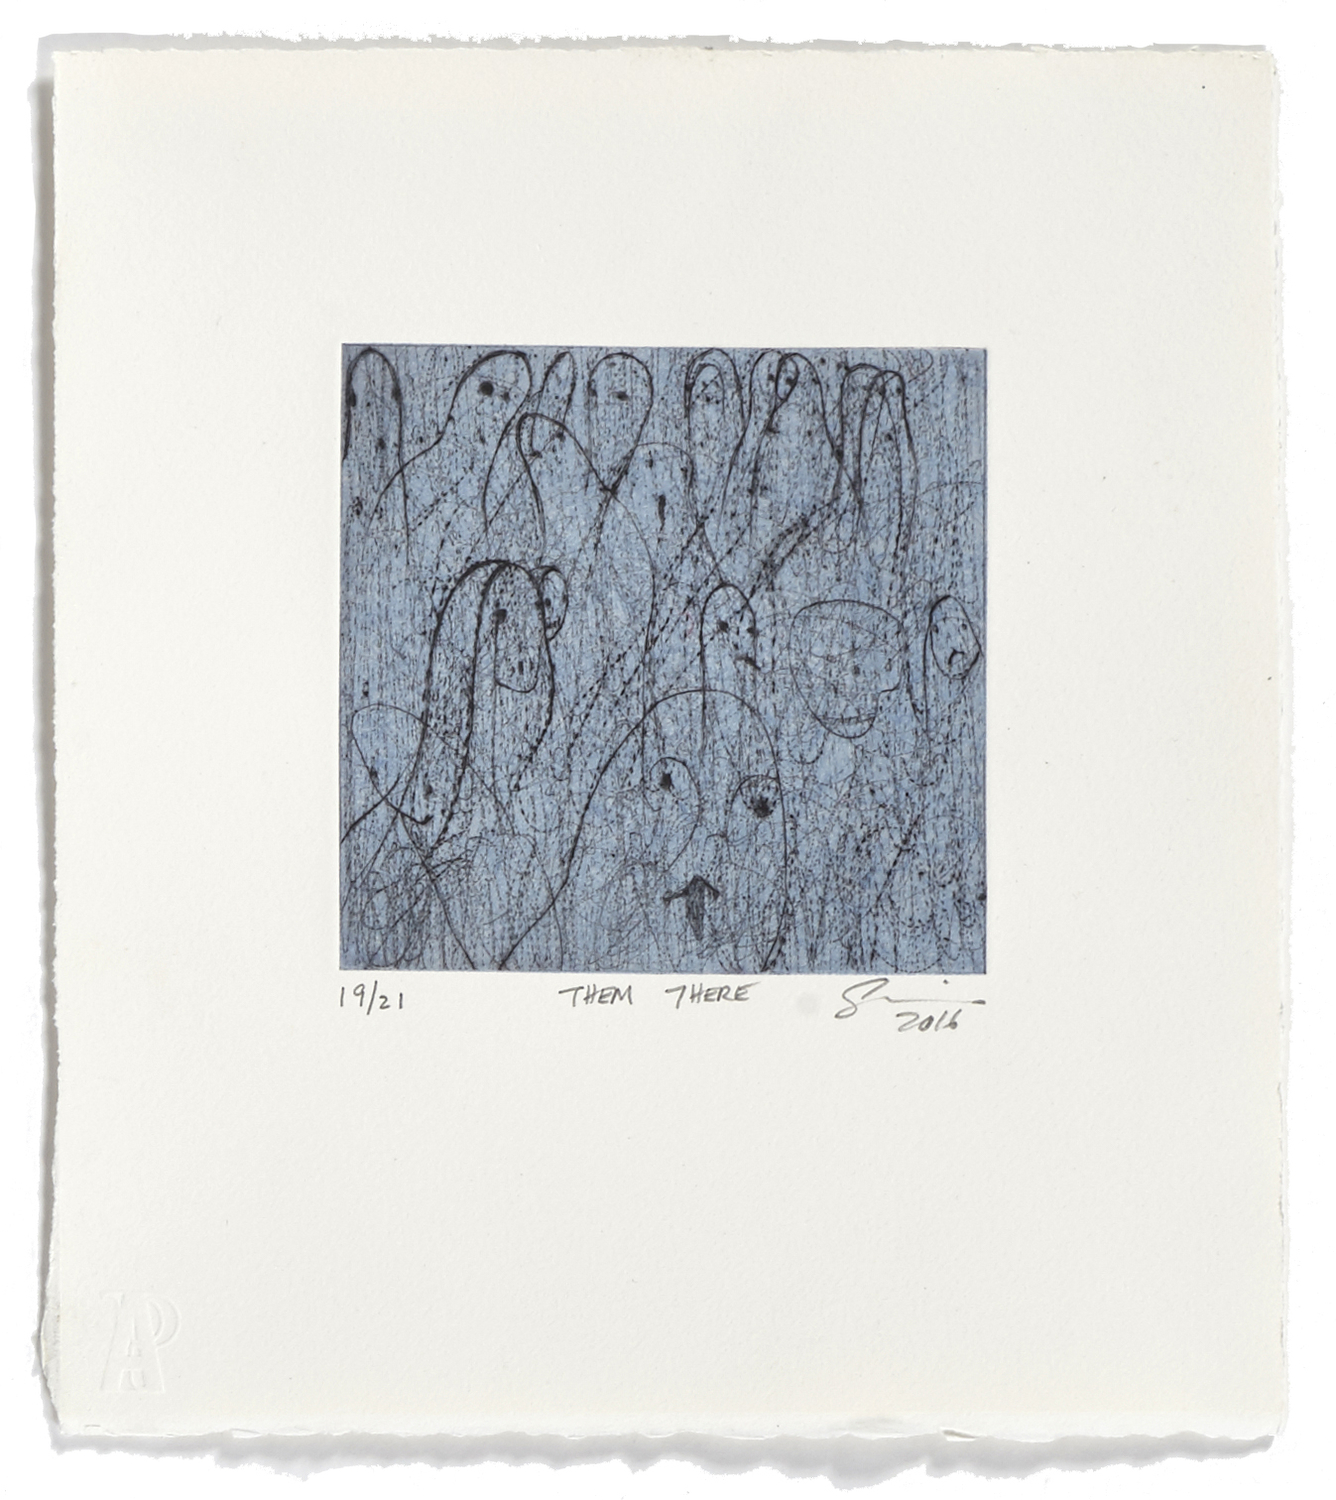 Them There    2016 | 32 x 26 cm | Drypoint and chine collé | 21 prints | Editor Atelier-Galerie A. Piroir